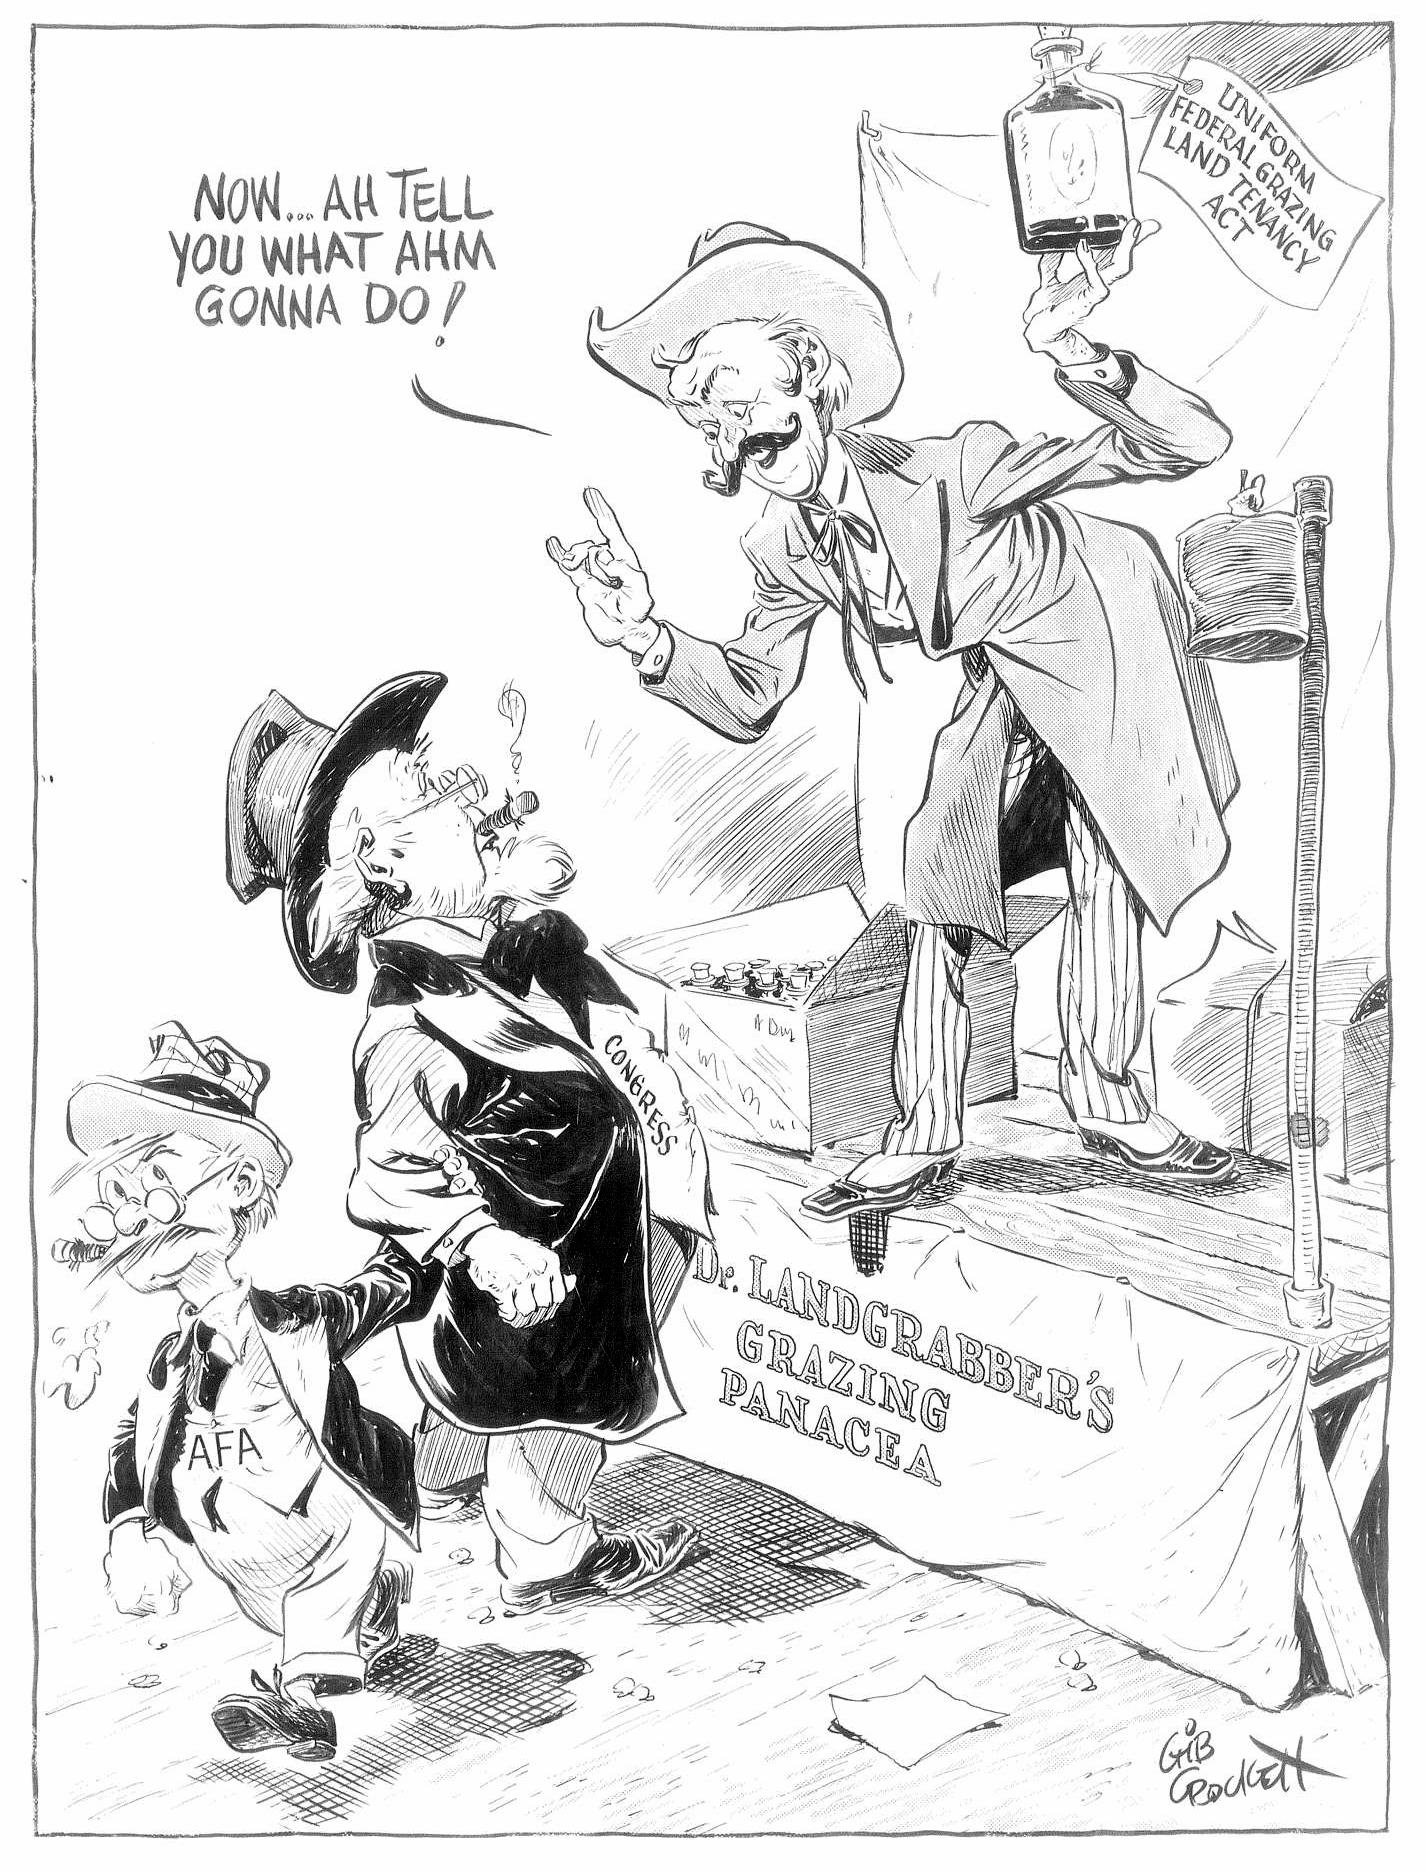 1953 political cartoon